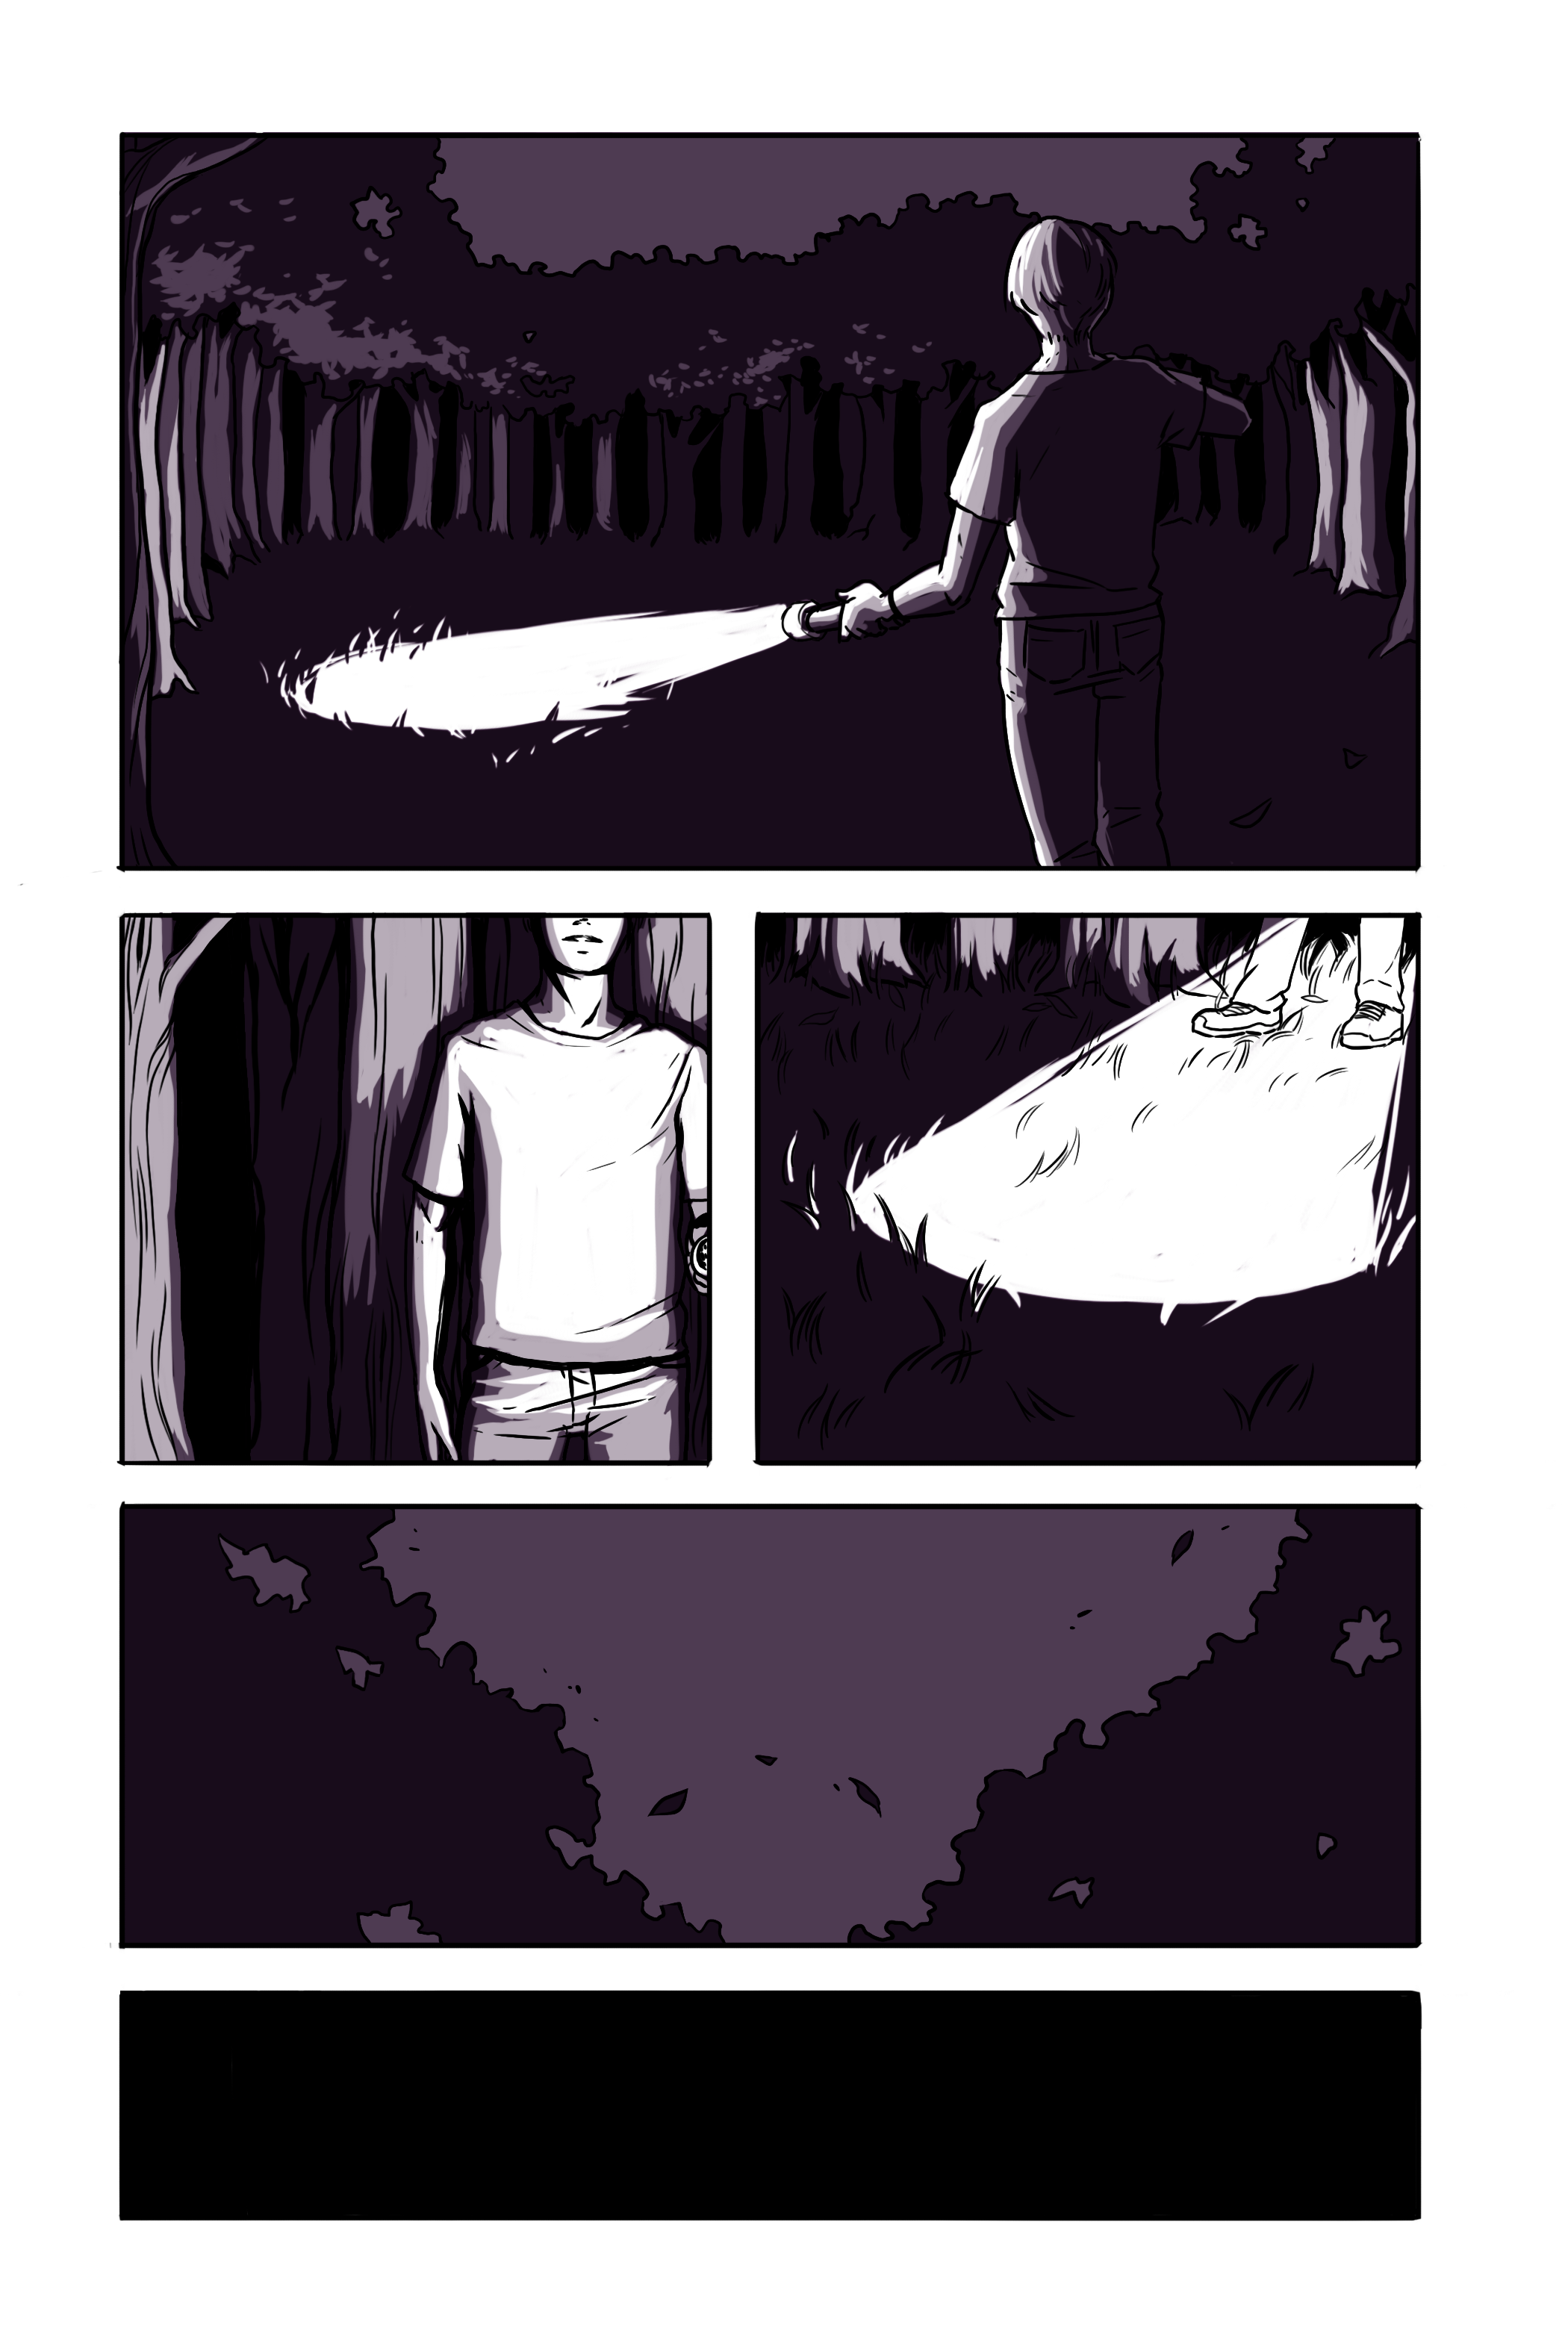 Night_Page2_SAMPLE.png